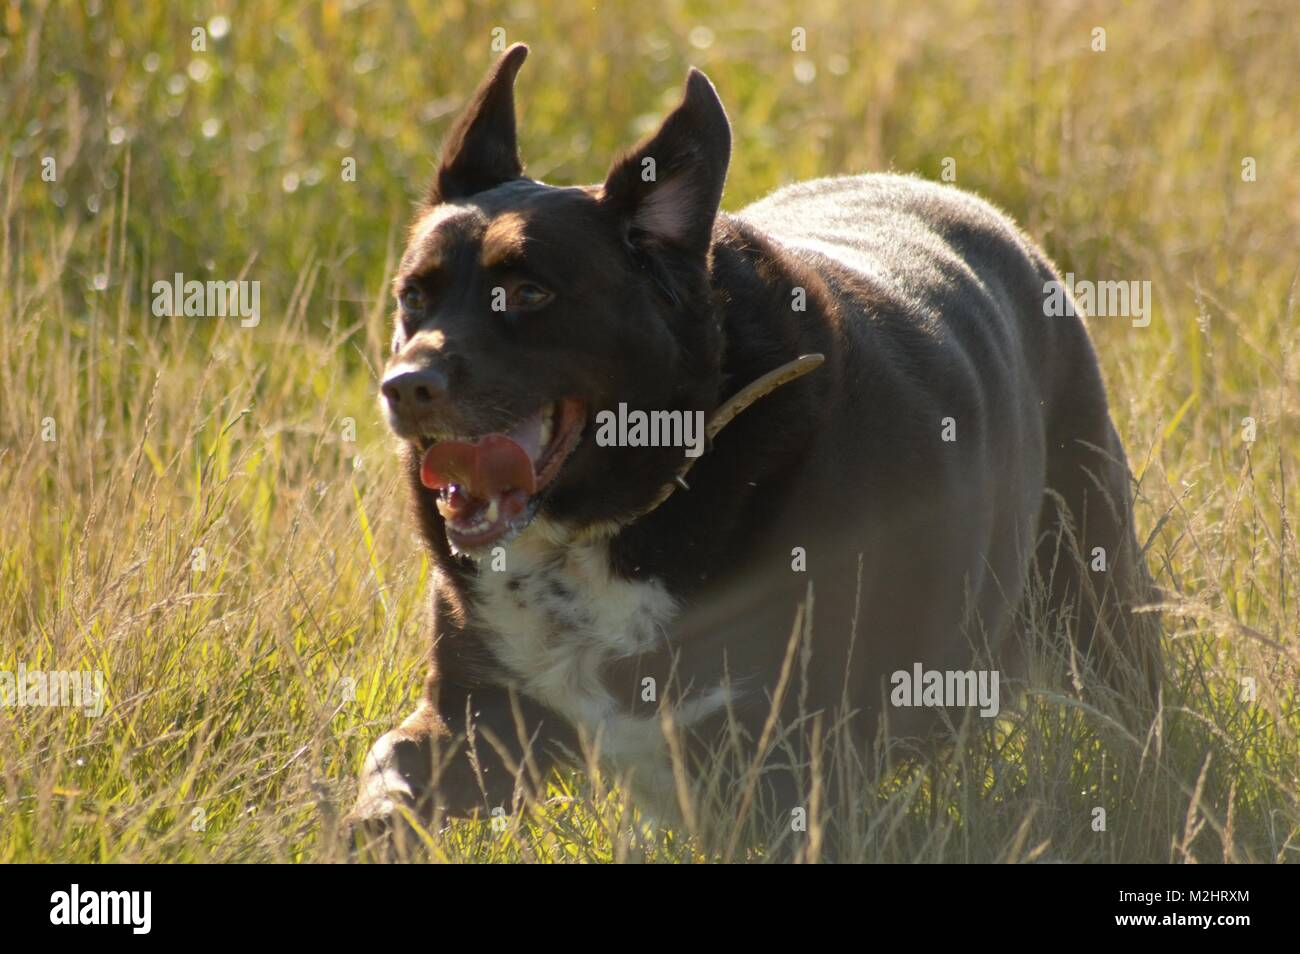 Dog running in the grass. - Stock Image